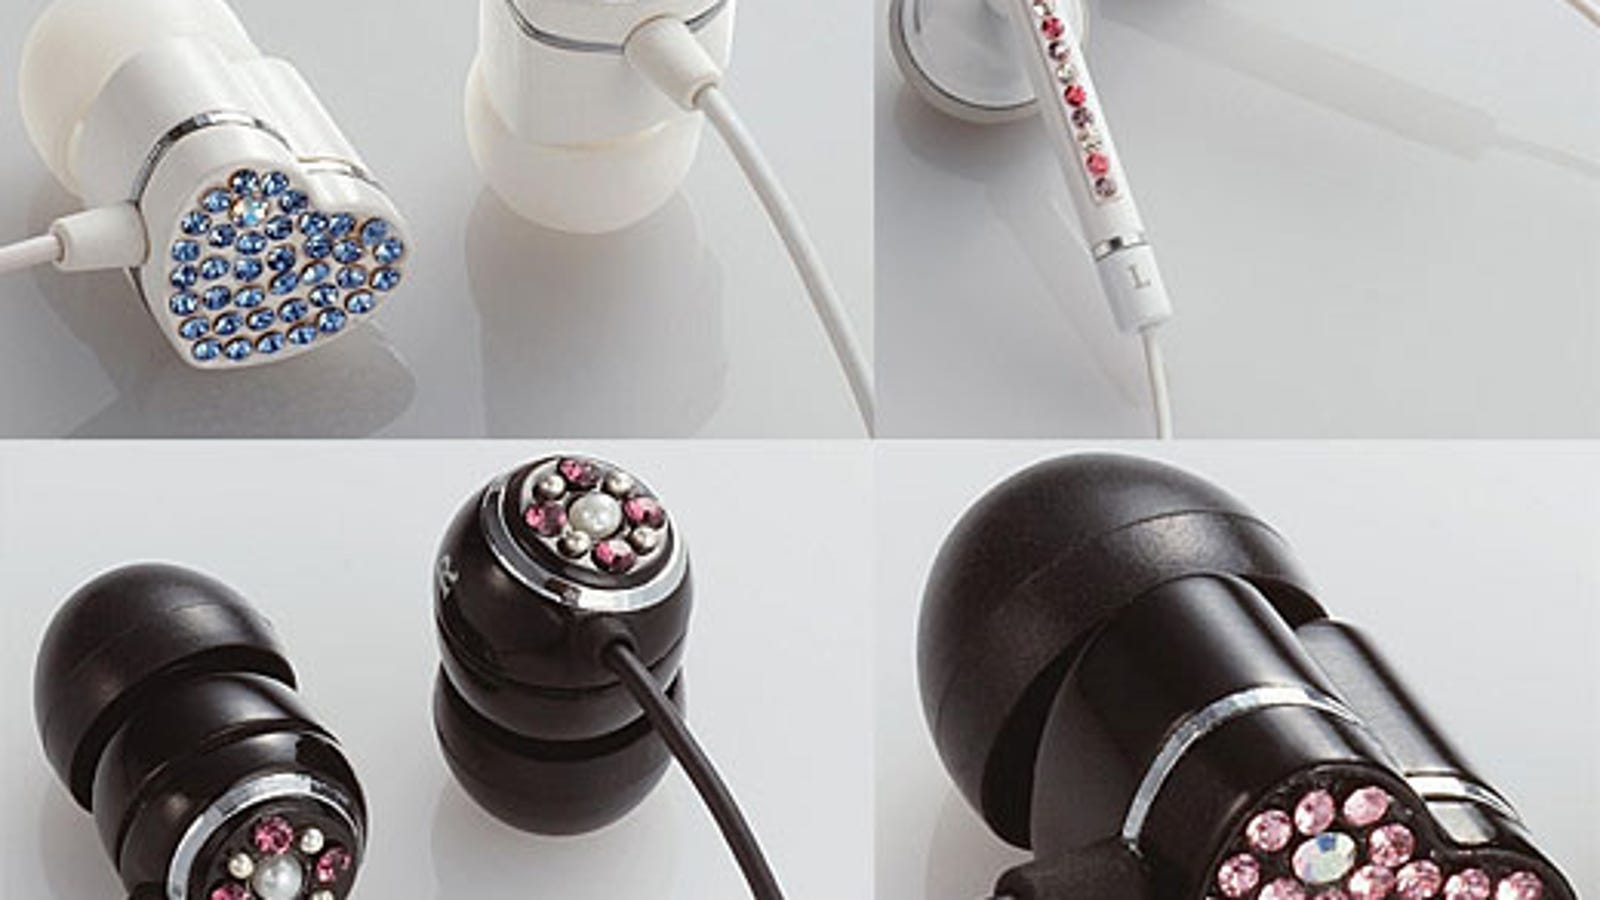 akg wireless headphones - Elecom Ear Drops Earphones: Cheap Hookers Listen to Music, Too